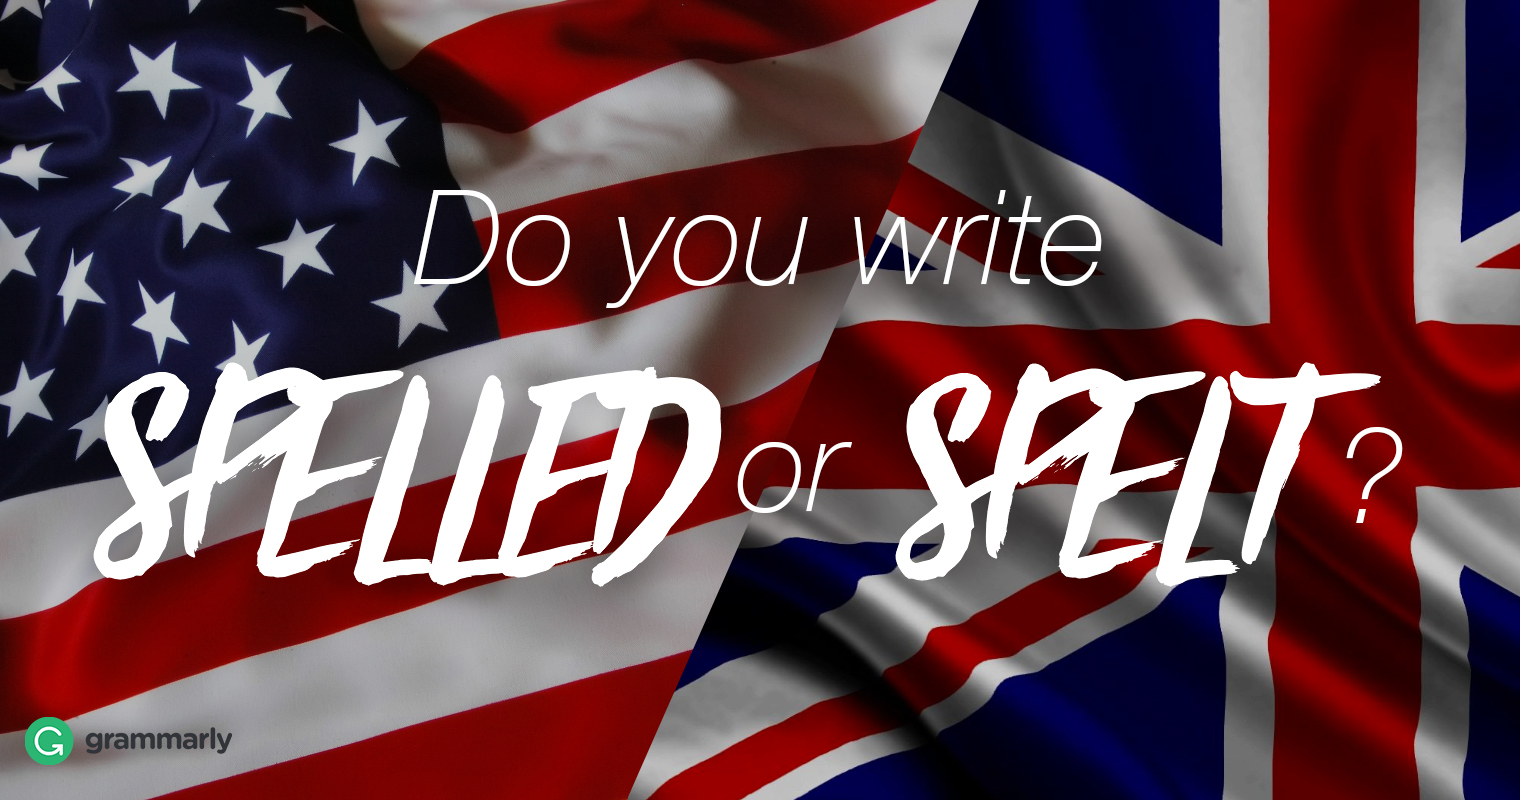 Spelled or spelt depends on where you live grammarly spelled or spelt image spiritdancerdesigns Image collections